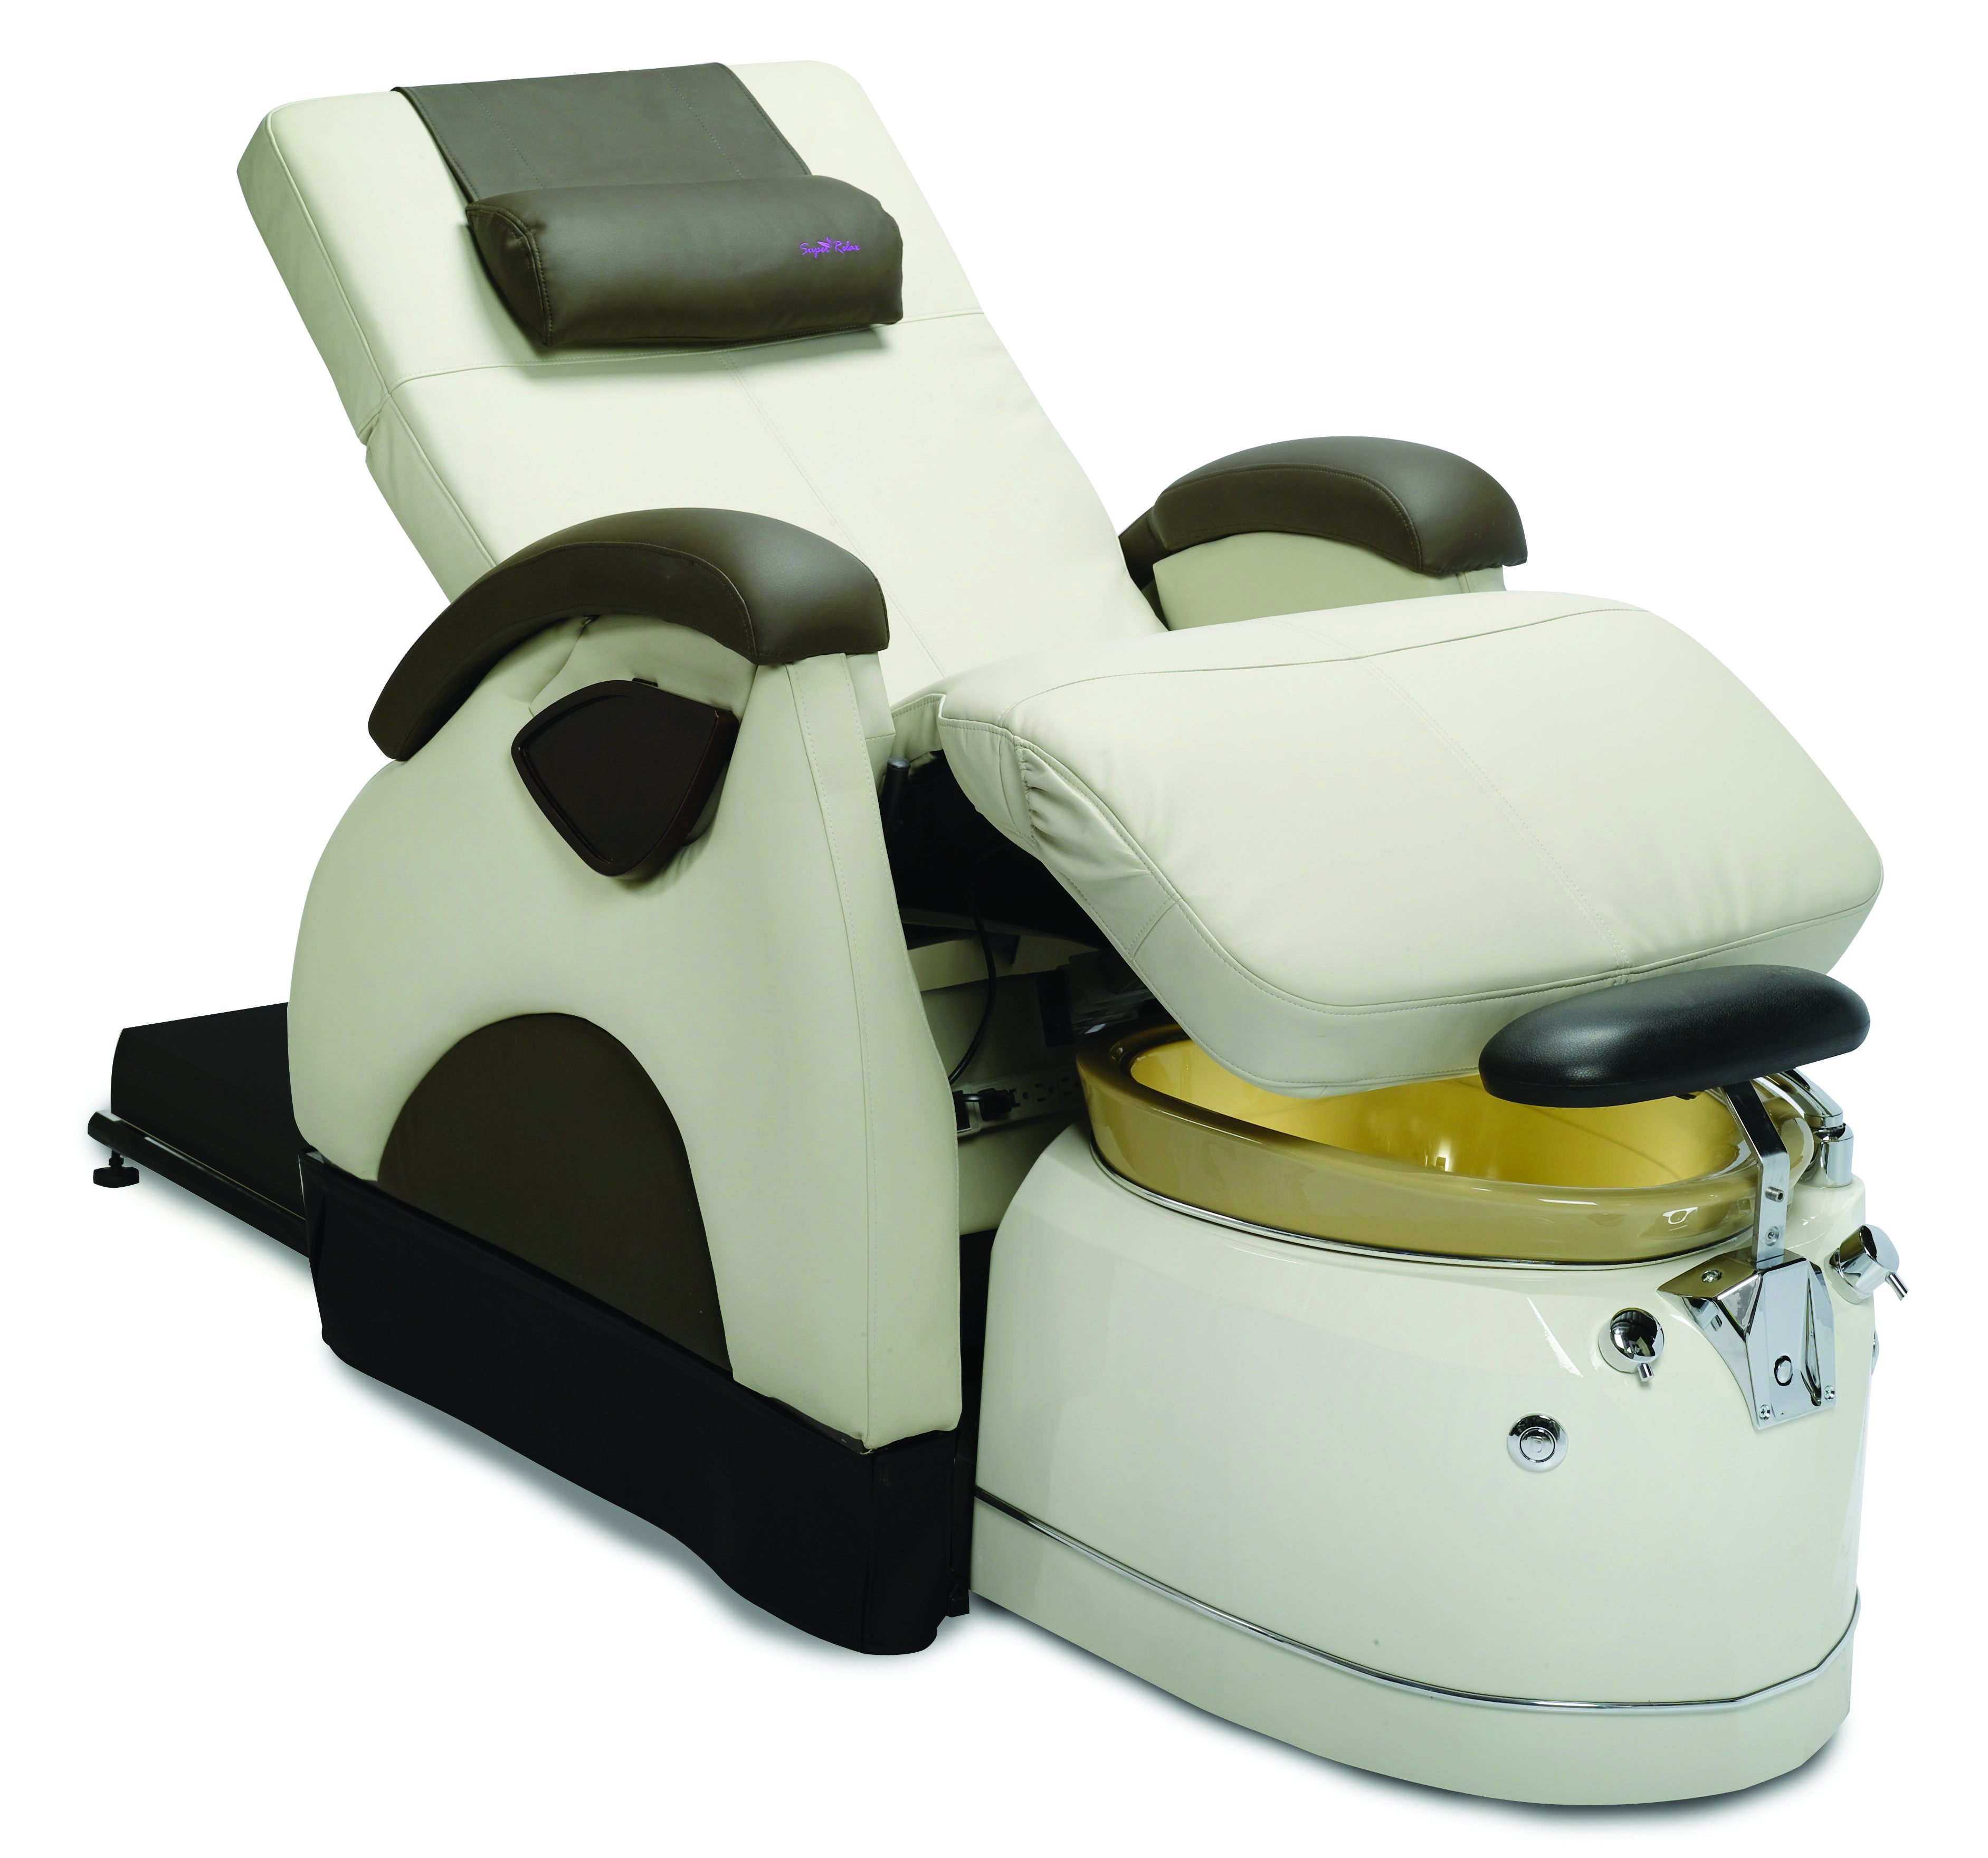 Spa Pedicure Chair Awesome I m sure it s A LOT cheaper than the